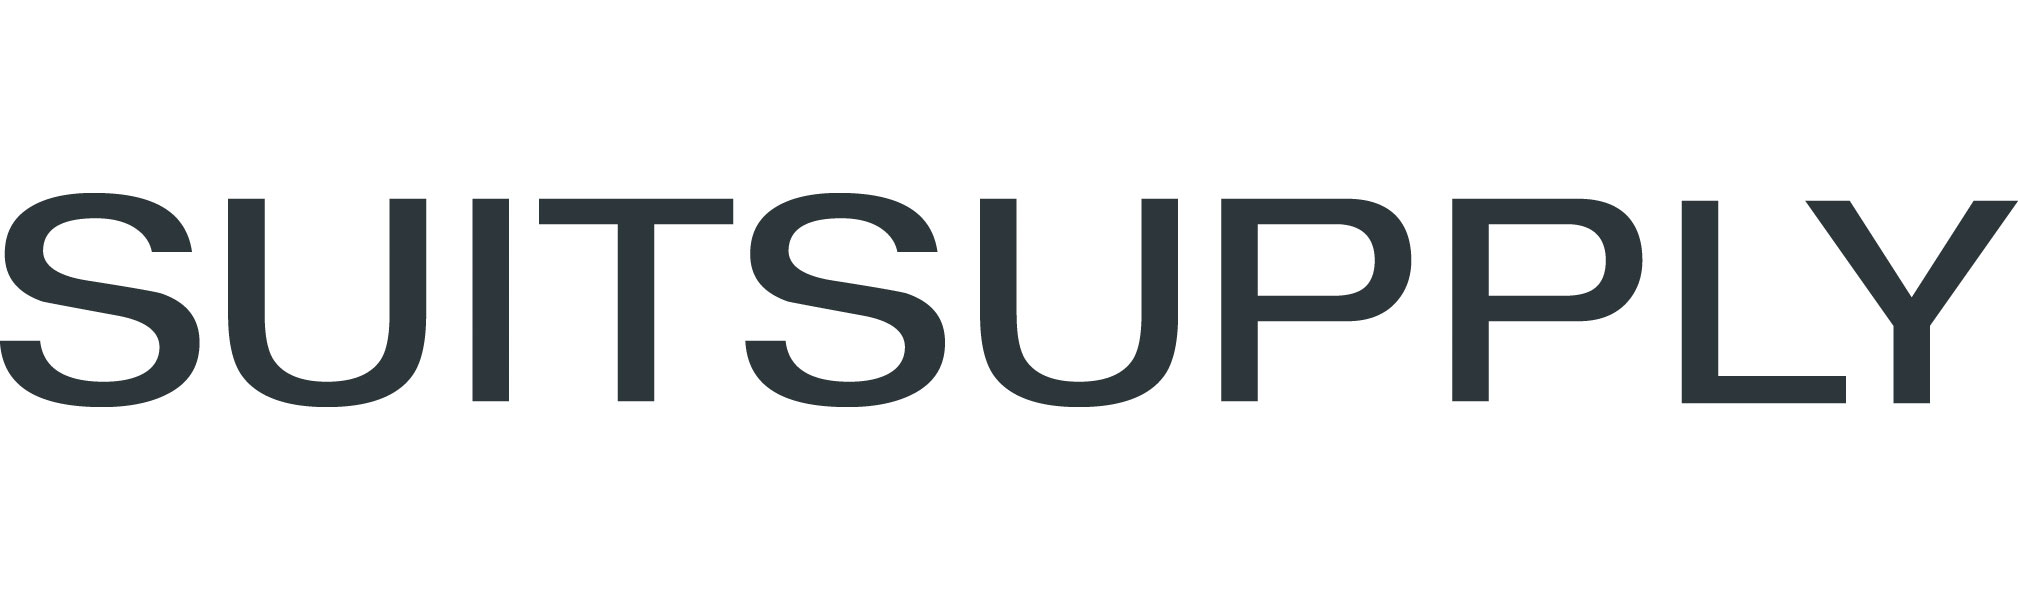 Suitsupply Logo